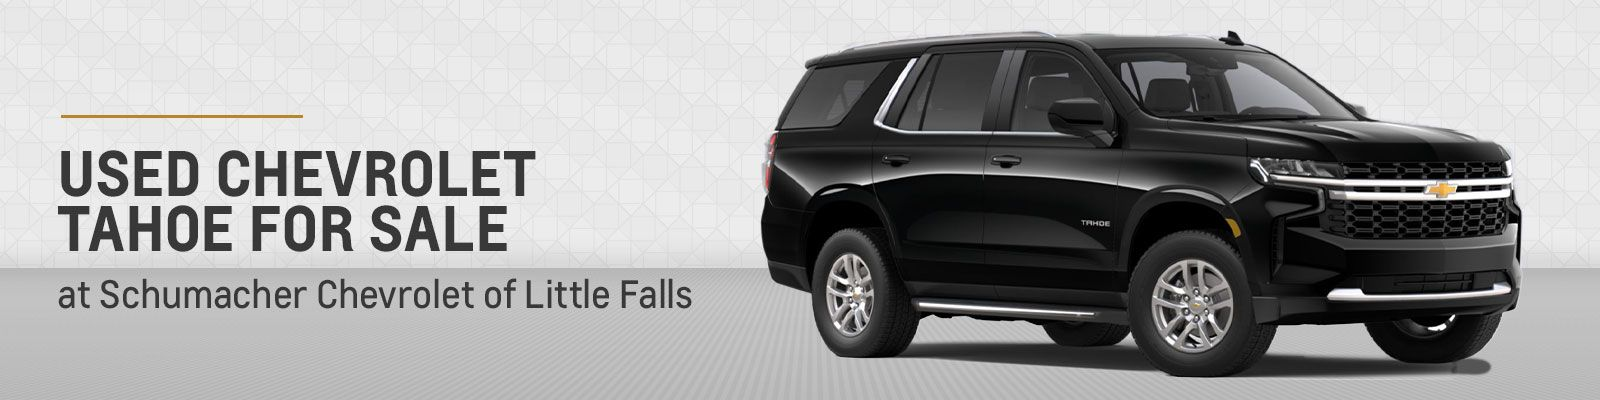 Used Chevrolet Tahoe Inventory Page - Schumacher Chevrolet of Little Falls